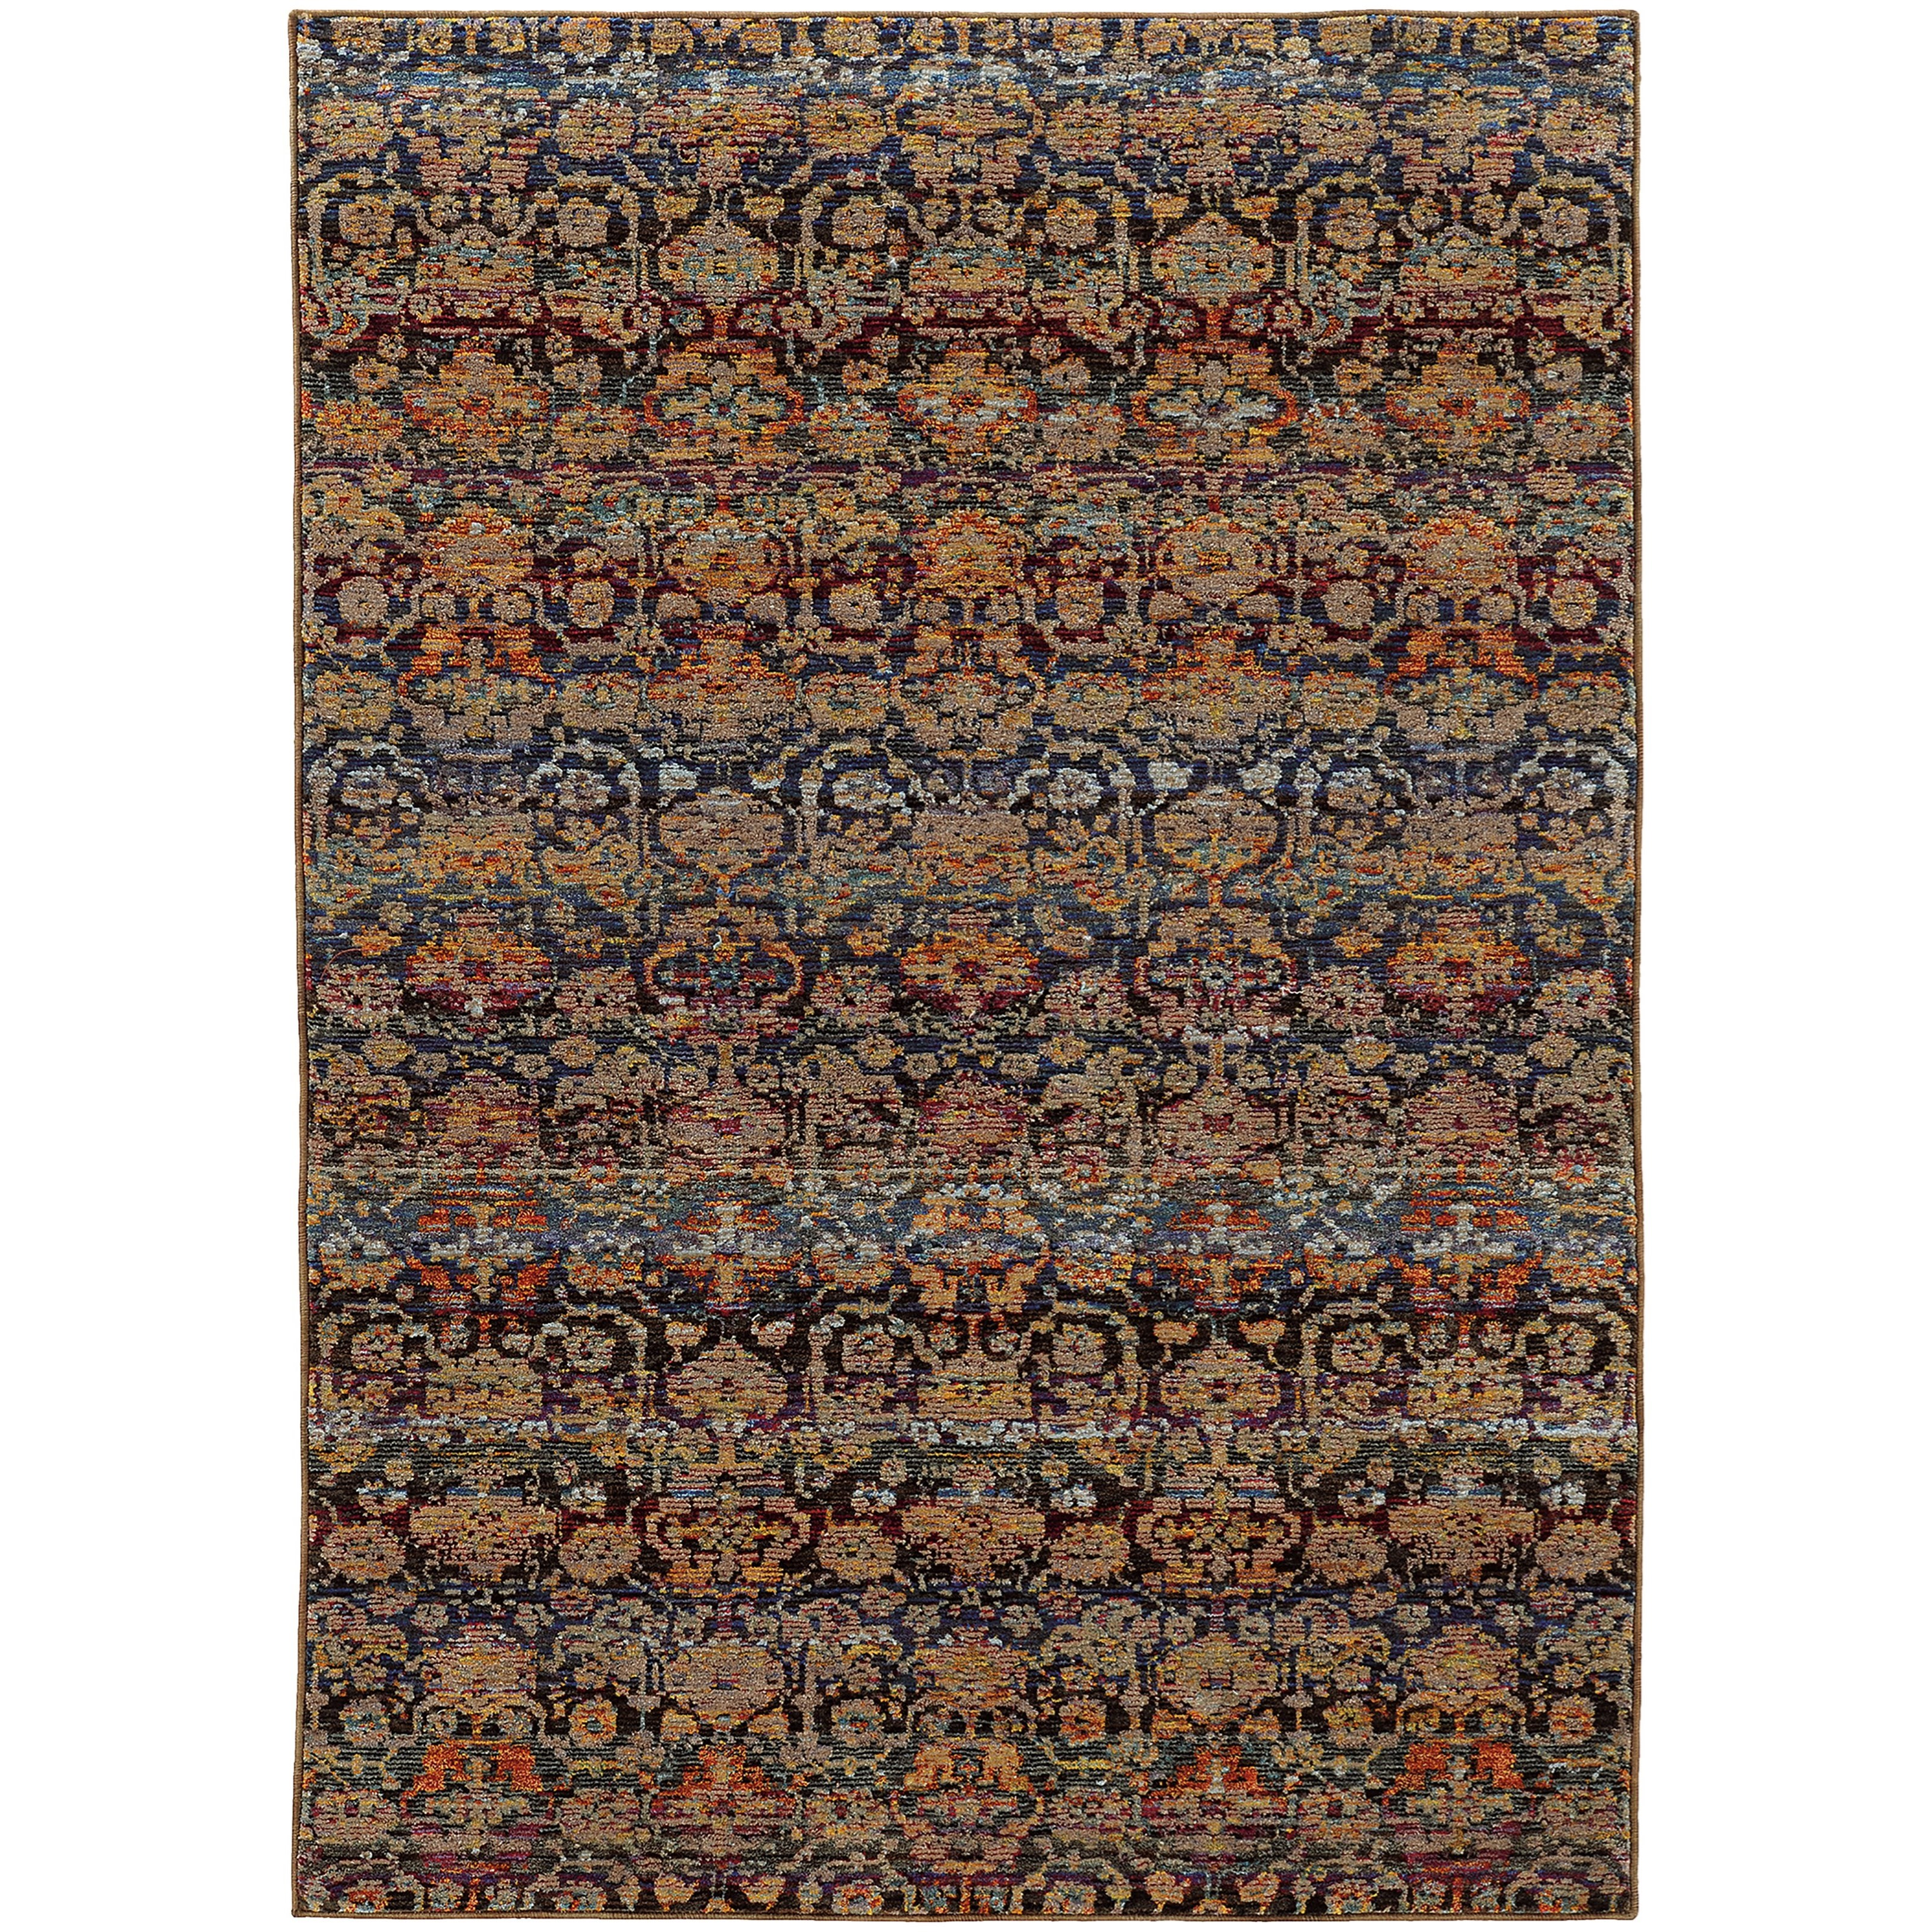 """Andorra 1'10"""" X  3' 2"""" Casual Multi/ Blue Rectangle  by Oriental Weavers at Steger's Furniture"""